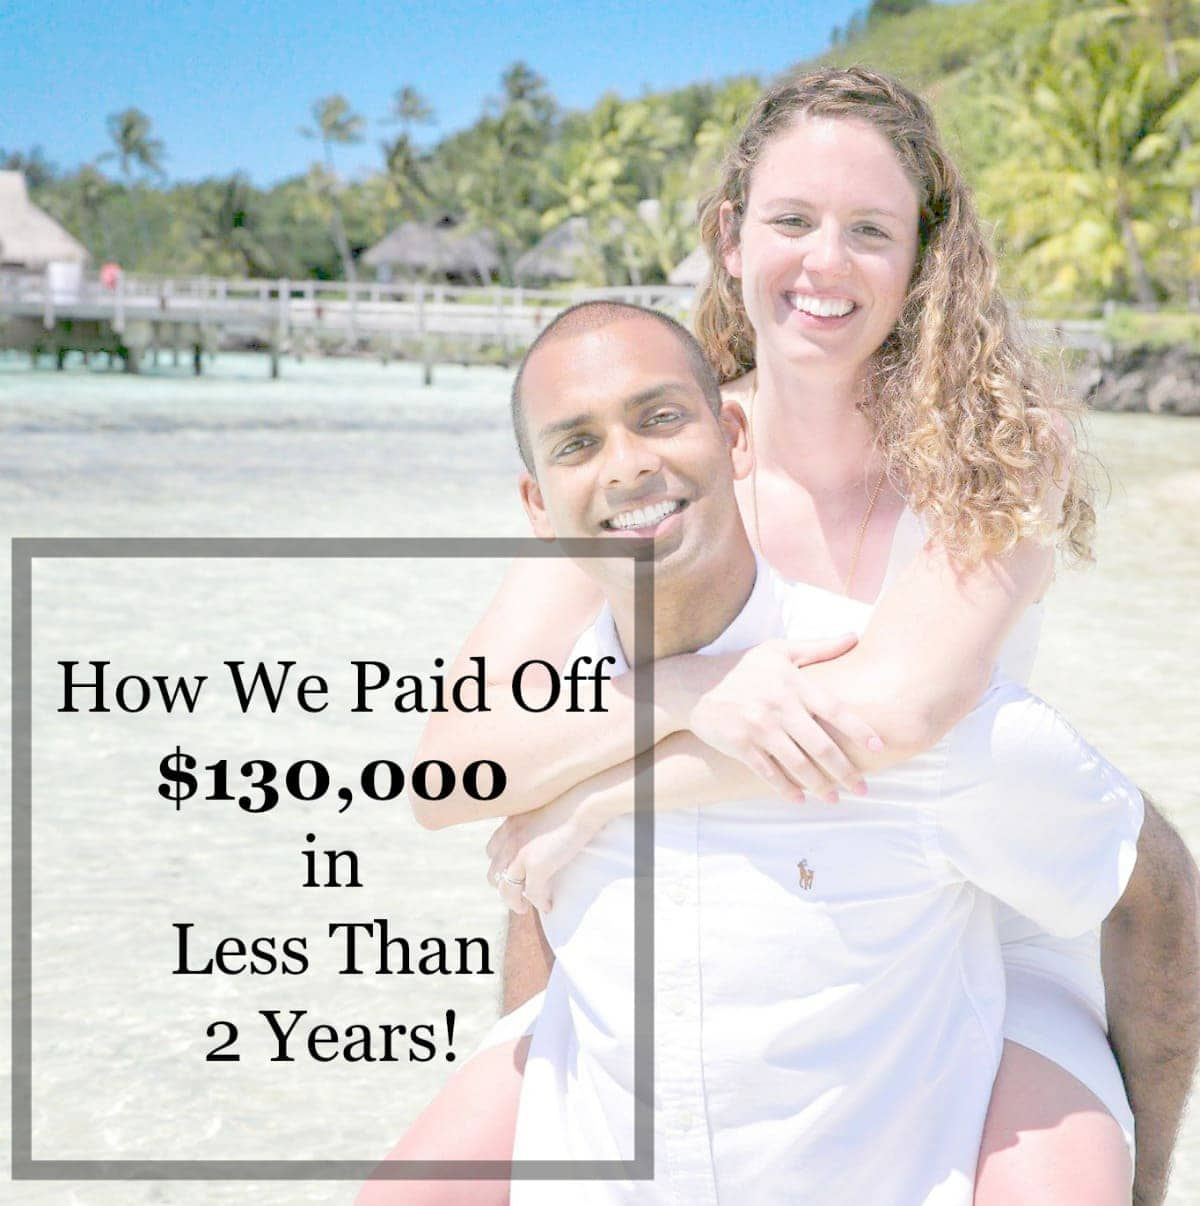 How One Couple Paid Off $130,000 in less than 2 YEARS!